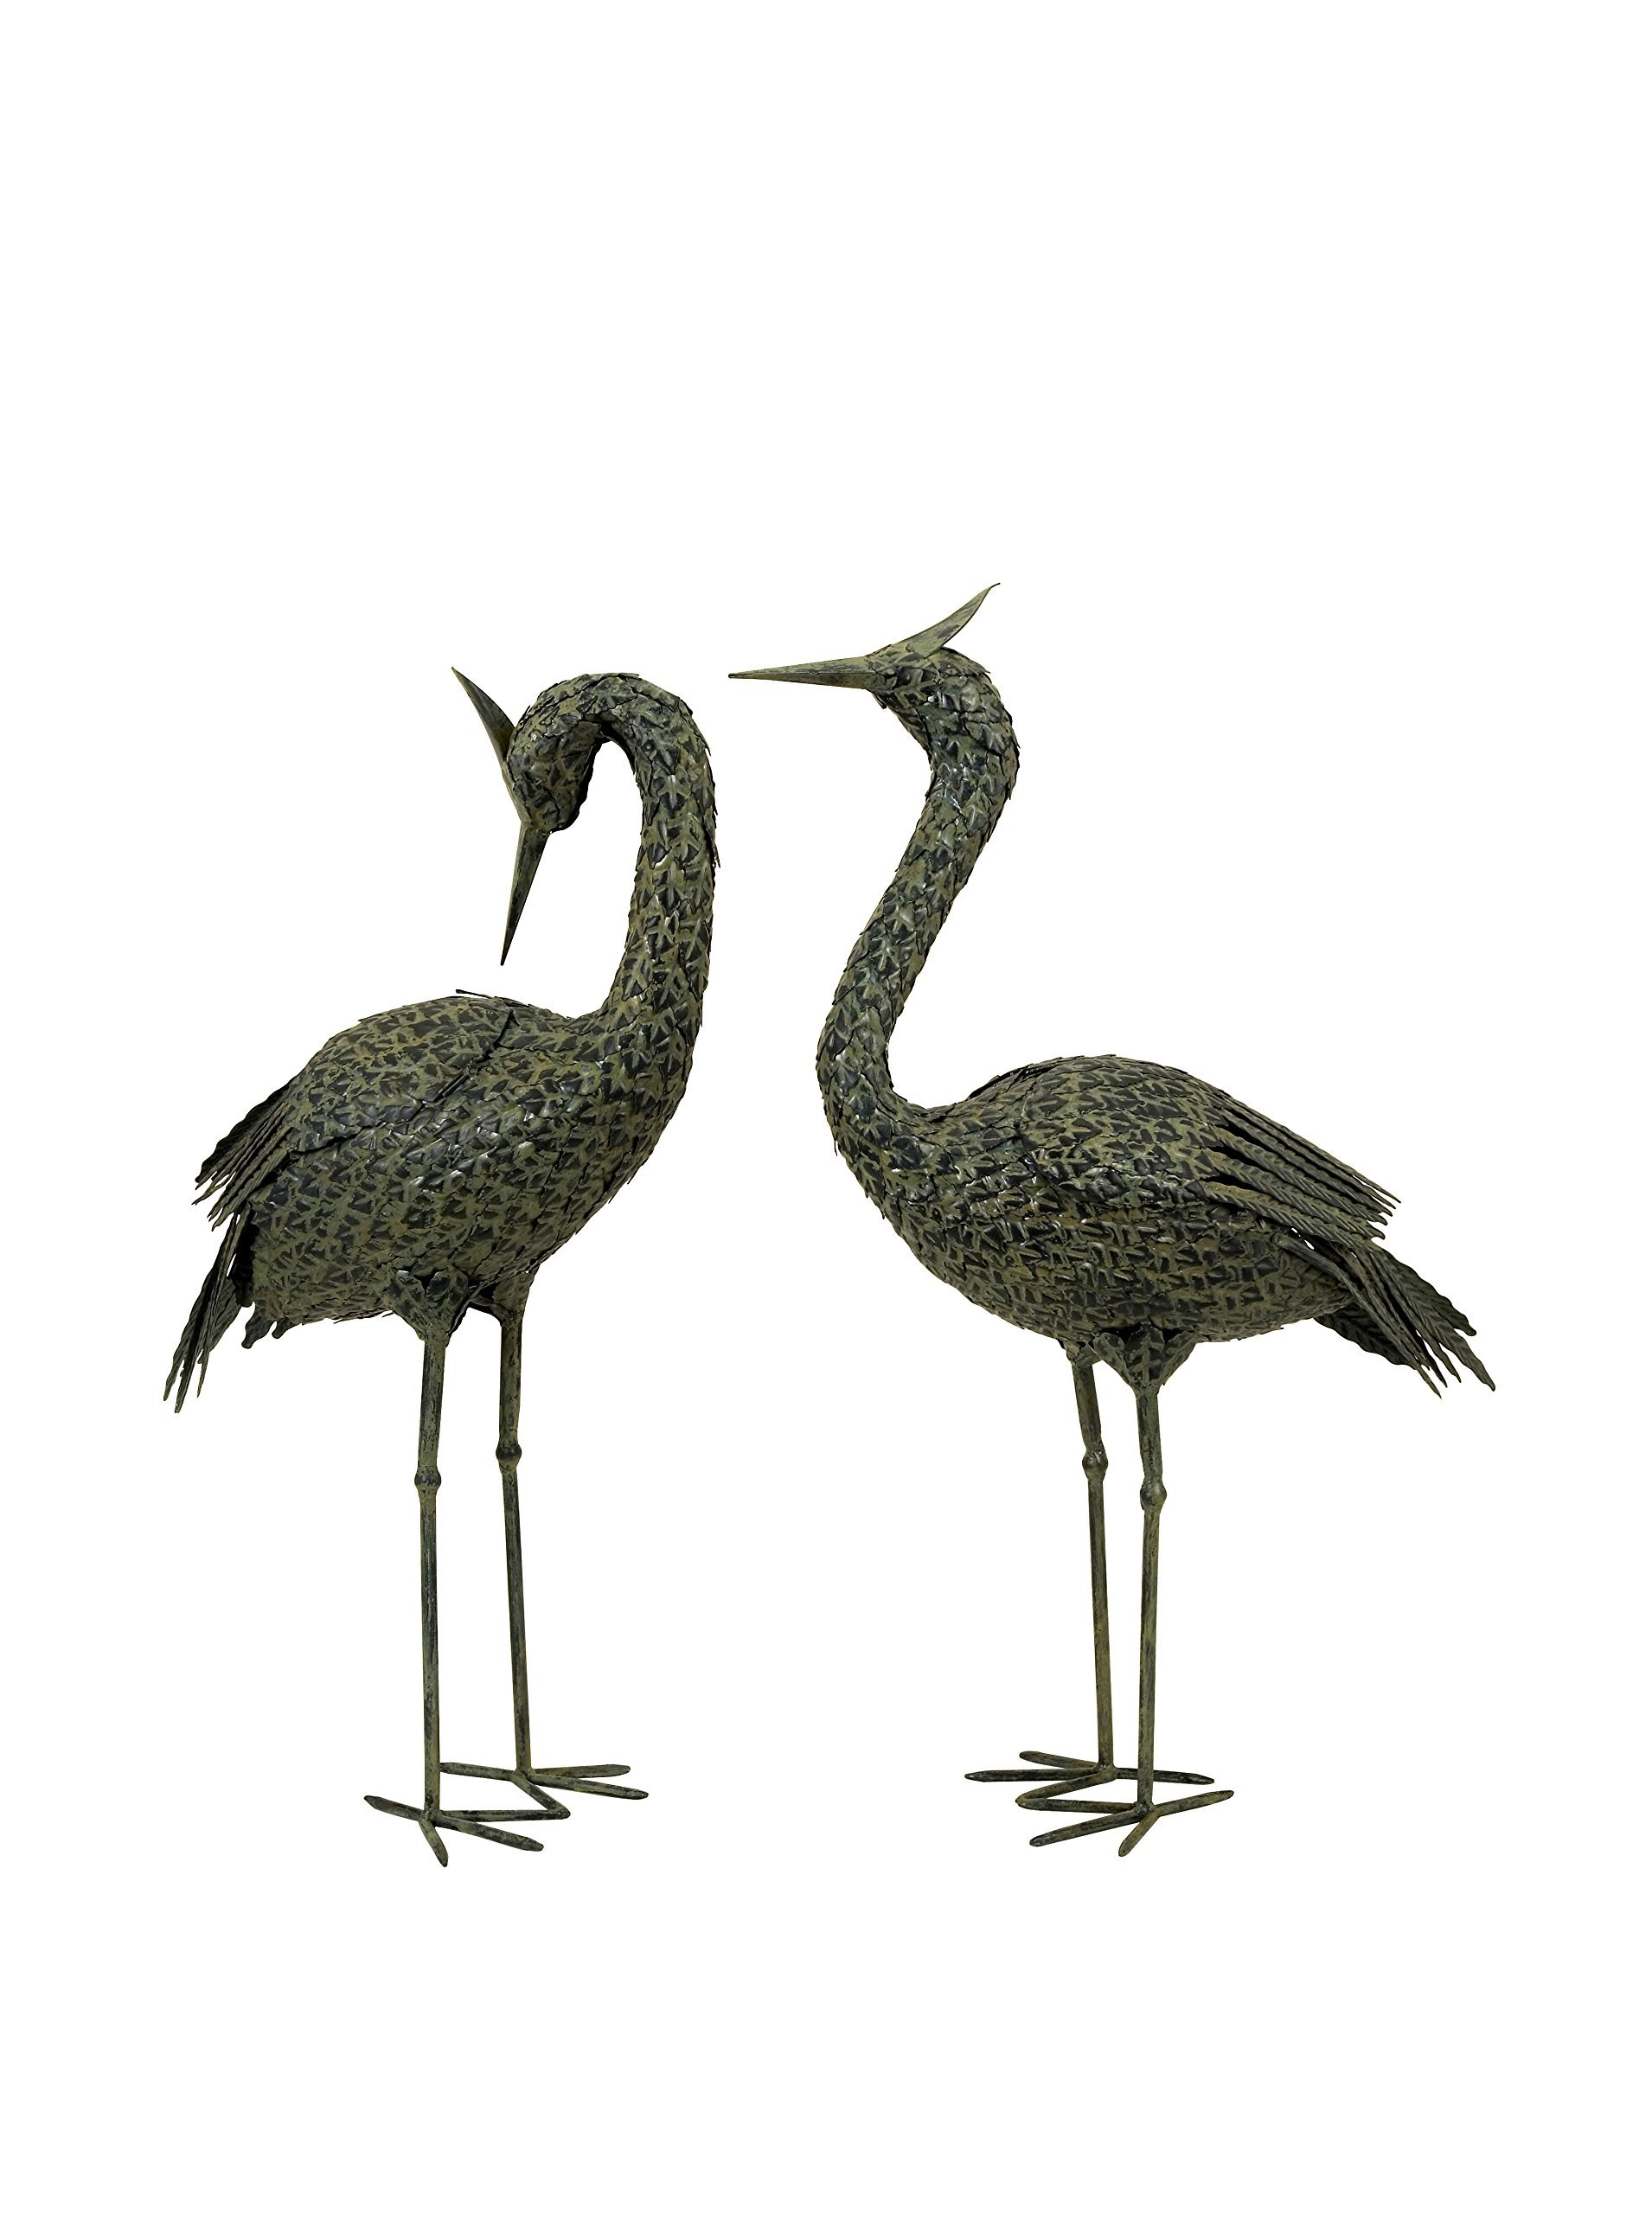 IMAX 5706-2 Metal Coastal Birds Sculpture, Set of 2